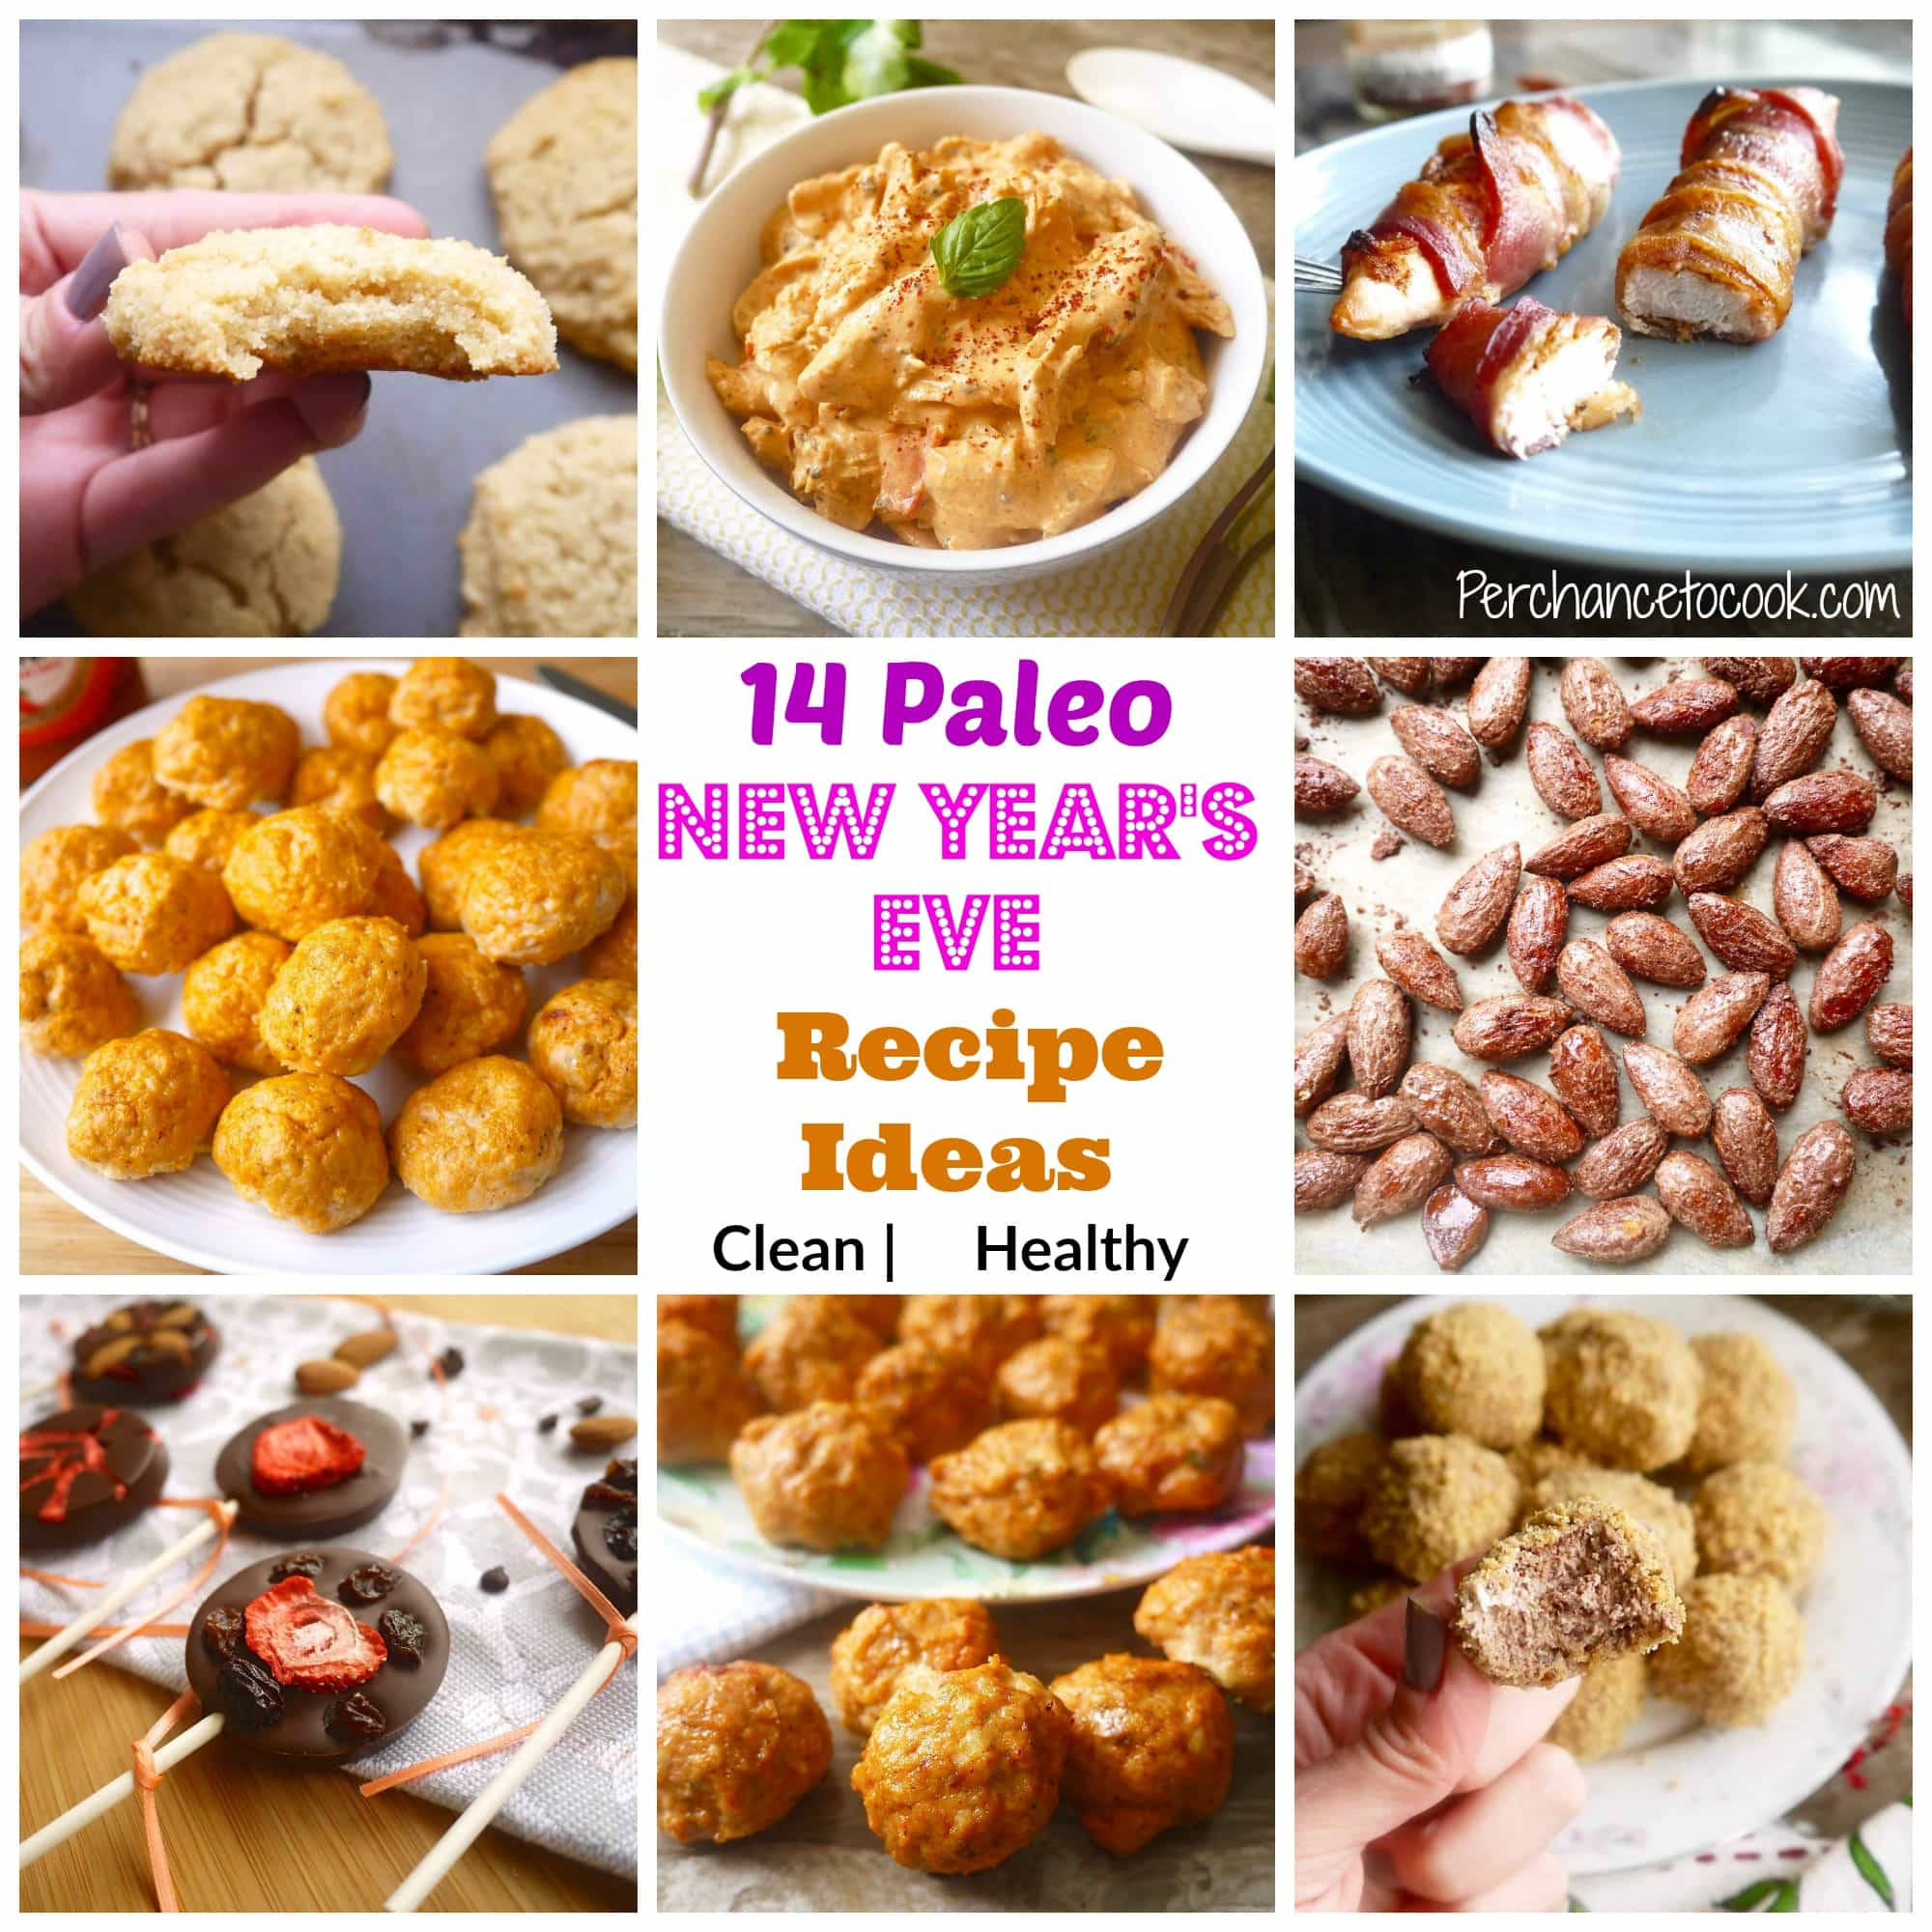 14 paleo new years eve recipe ideas perchance to cook 14 paleo new years eve recipe ideas forumfinder Images